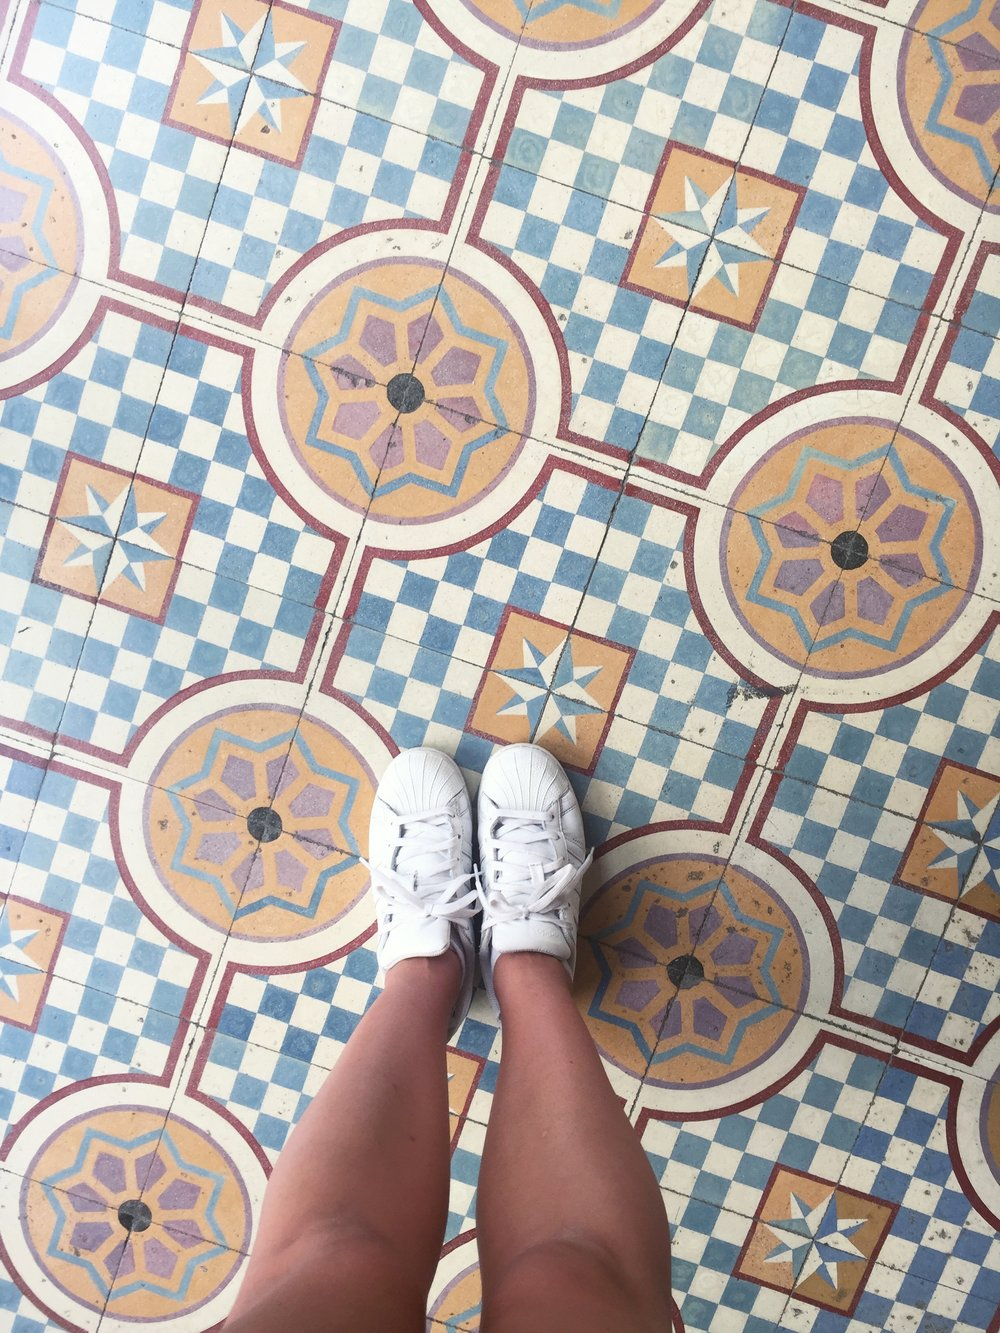 Valladolid has some pretty floor